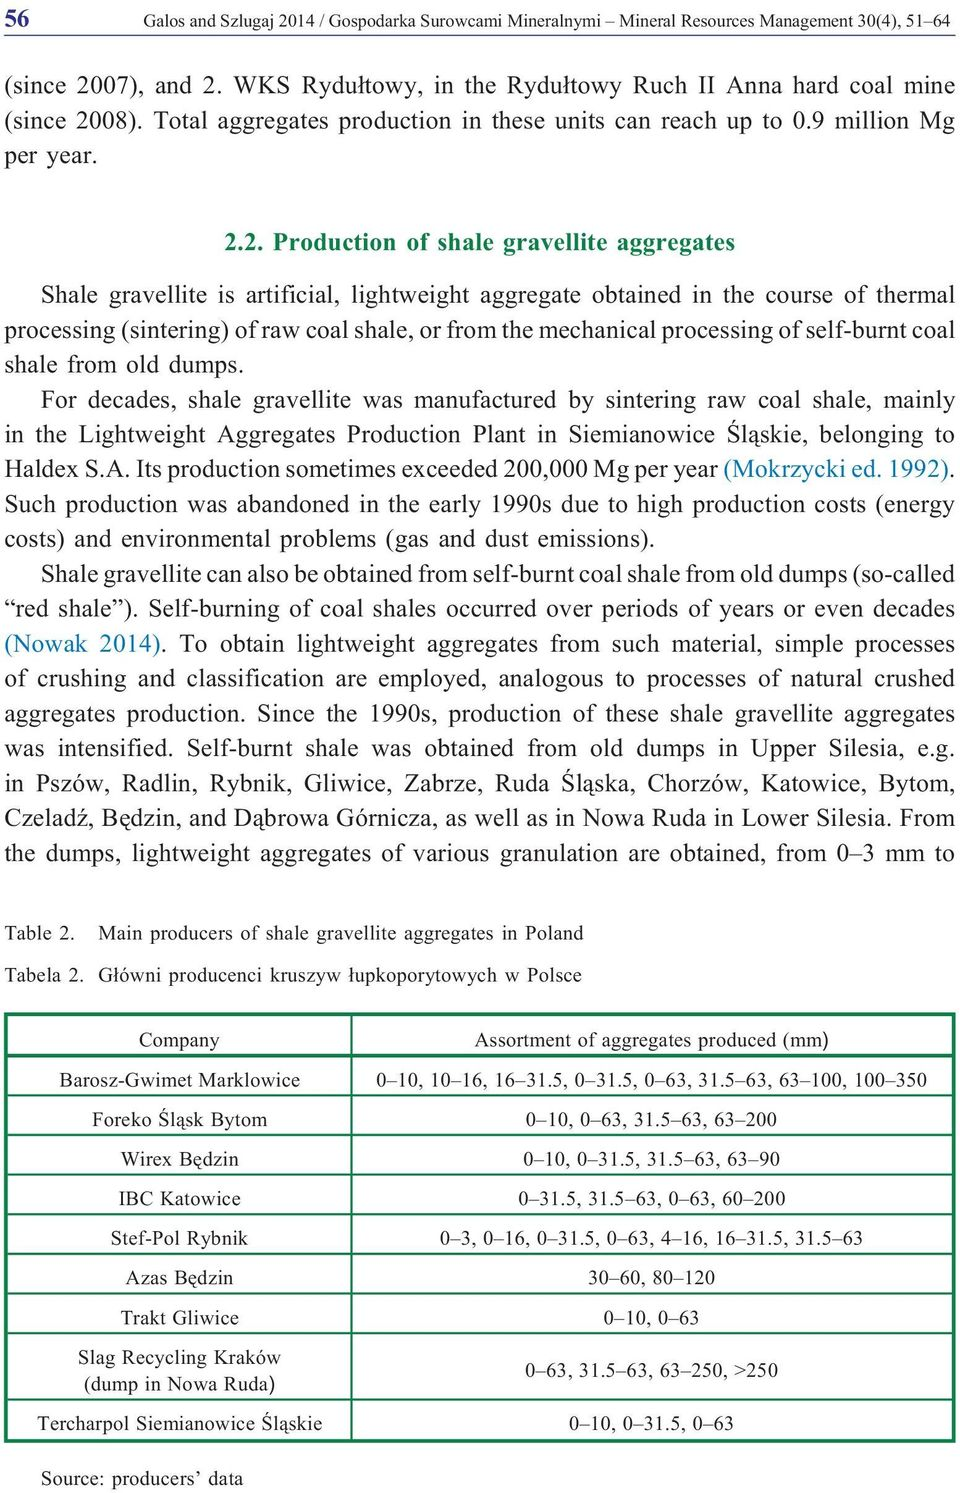 2. Production of shale gravellite aggregates Shale gravellite is artificial, lightweight aggregate obtained in the course of thermal processing (sintering) of raw coal shale, or from the mechanical